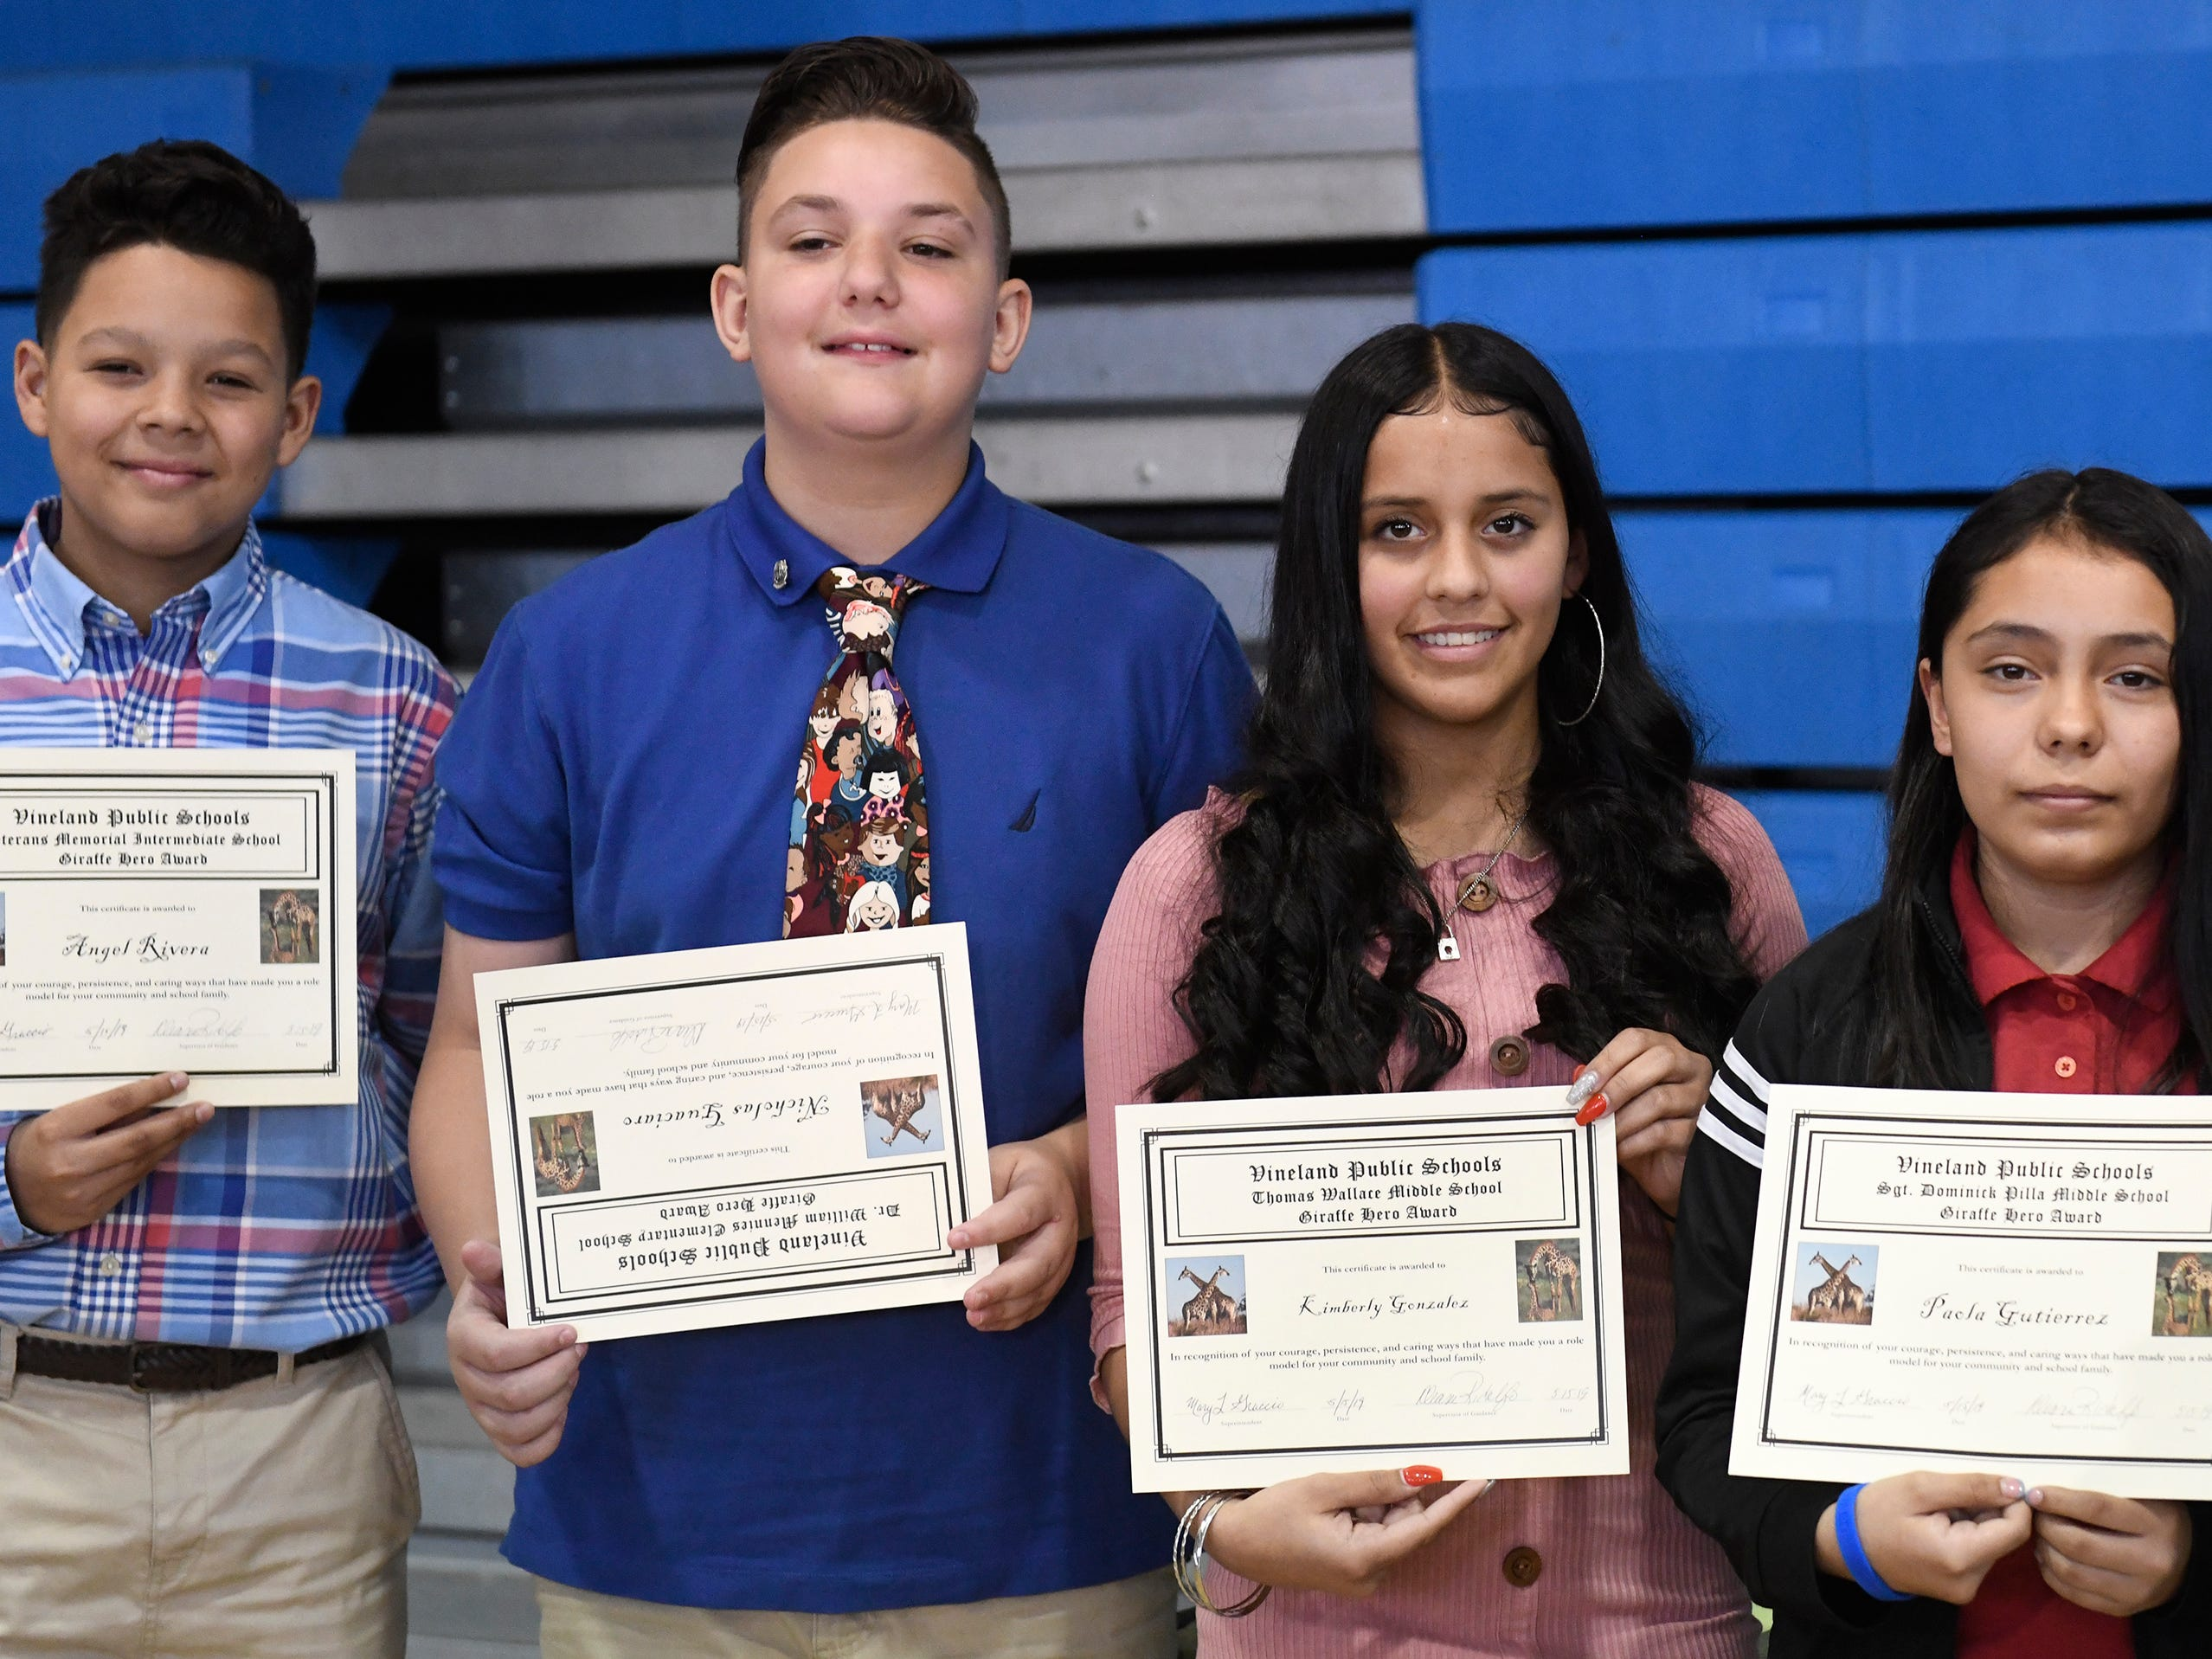 From left to right, Angel Rivera, Nicholas Guaciaro, Kimberly Gonzalez, Paola Gutierrez and Danica Newcomb were each presented with a Giraffe Hero Award during a special ceremony on Wednesday, May 15, 2019.